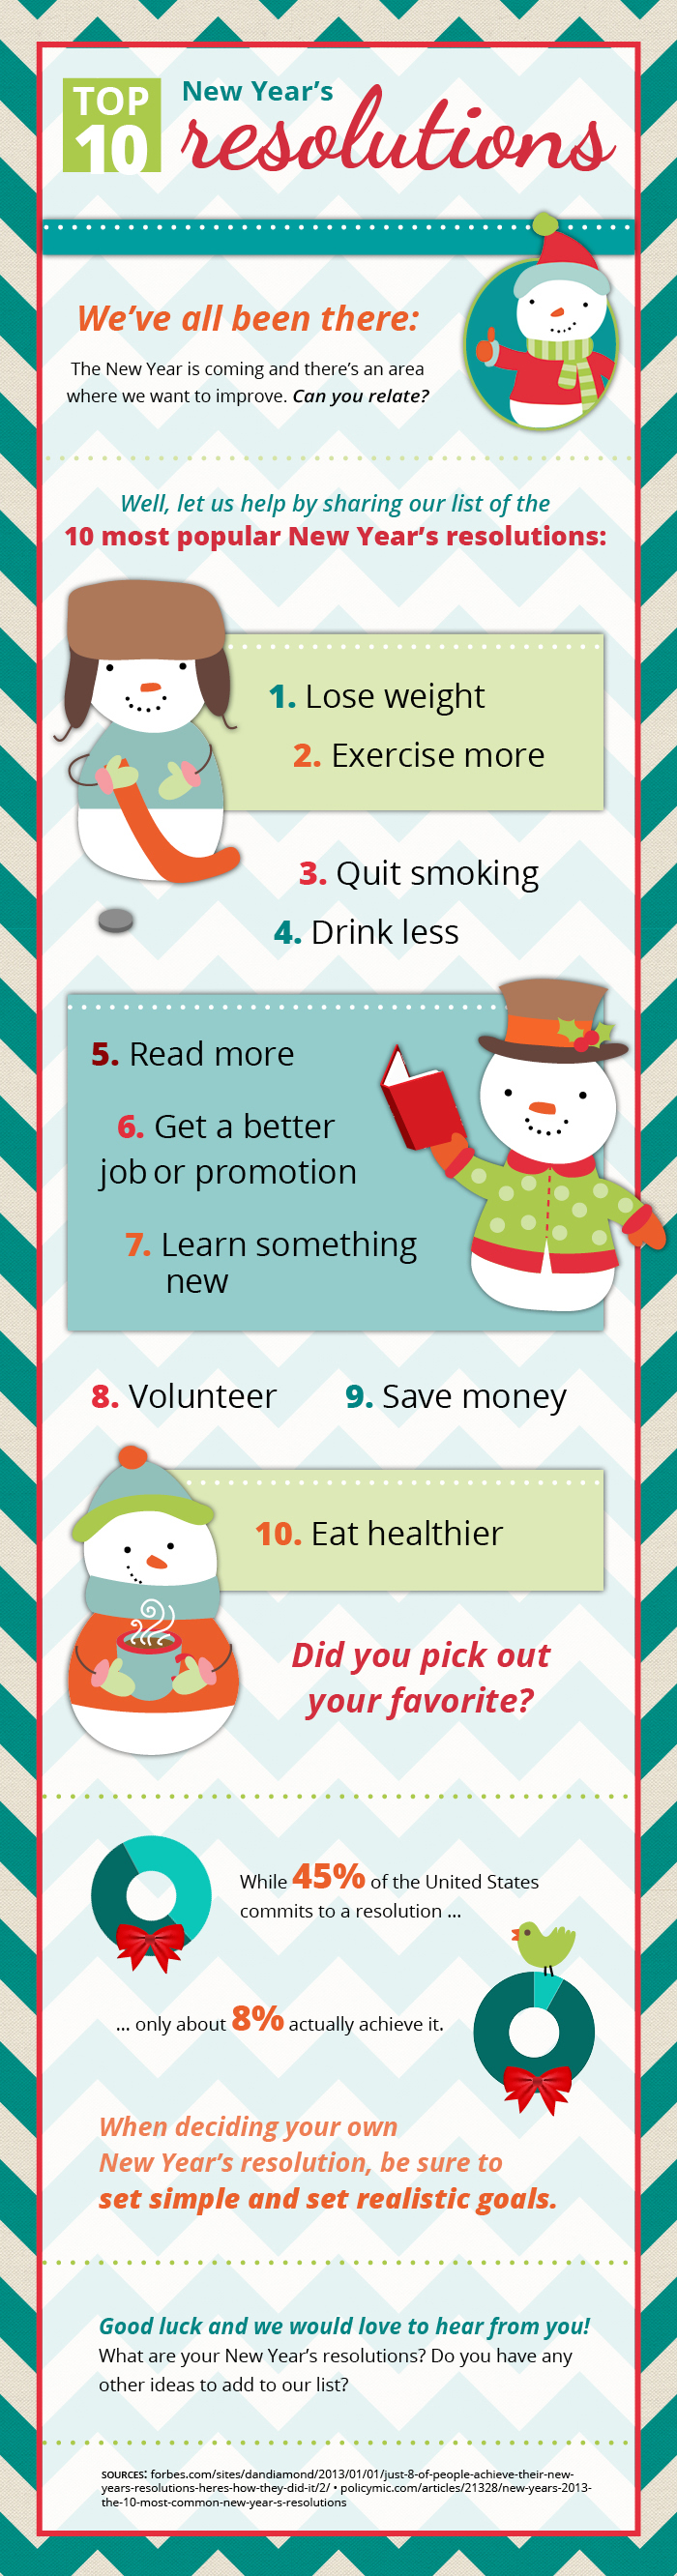 Share your New Year's resolutions with your Seattle orthodontists.